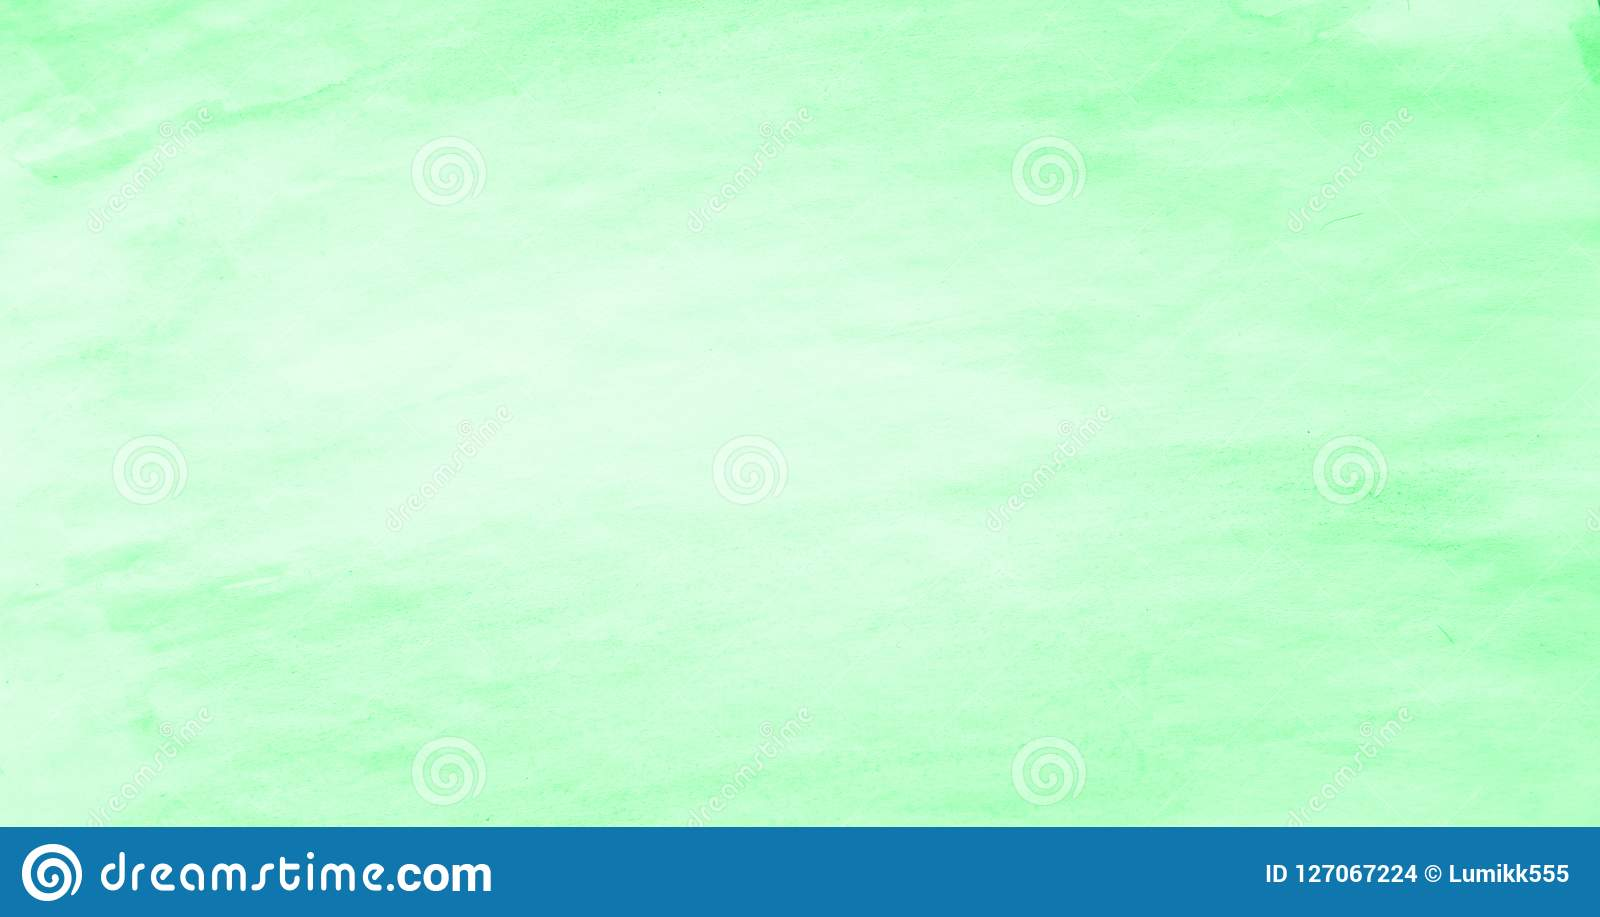 Art Light Green Watercolor Background For Design Stock Photo